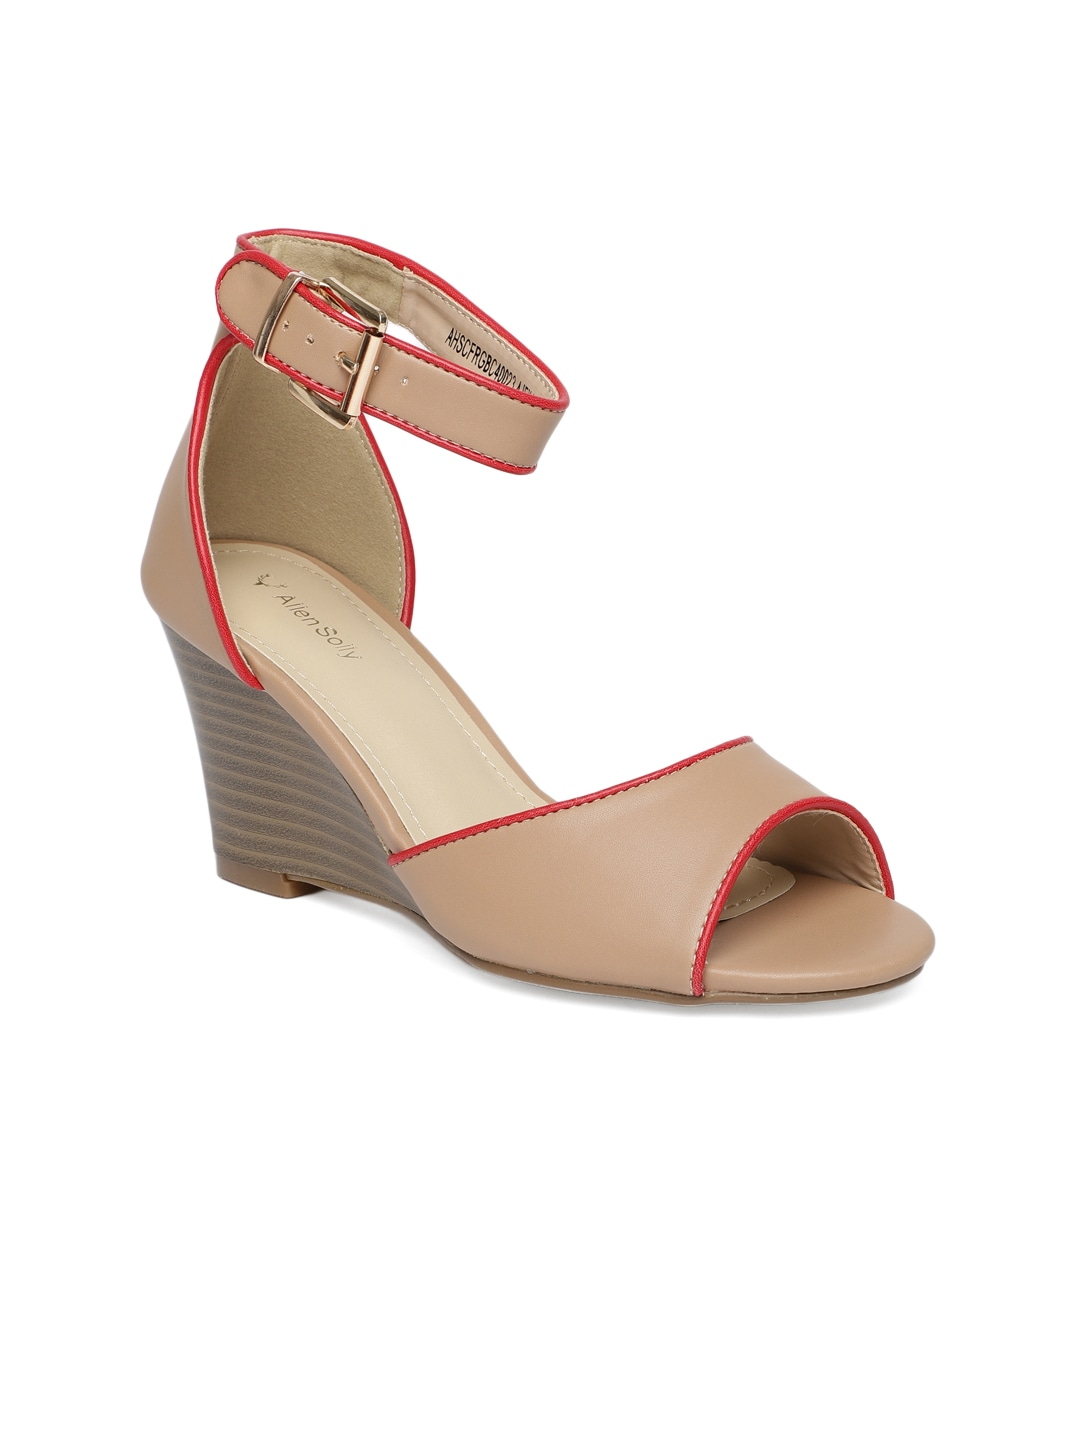 36f0f0d97 Womens Wedges - Buy Wedges for Women Online at Best Price